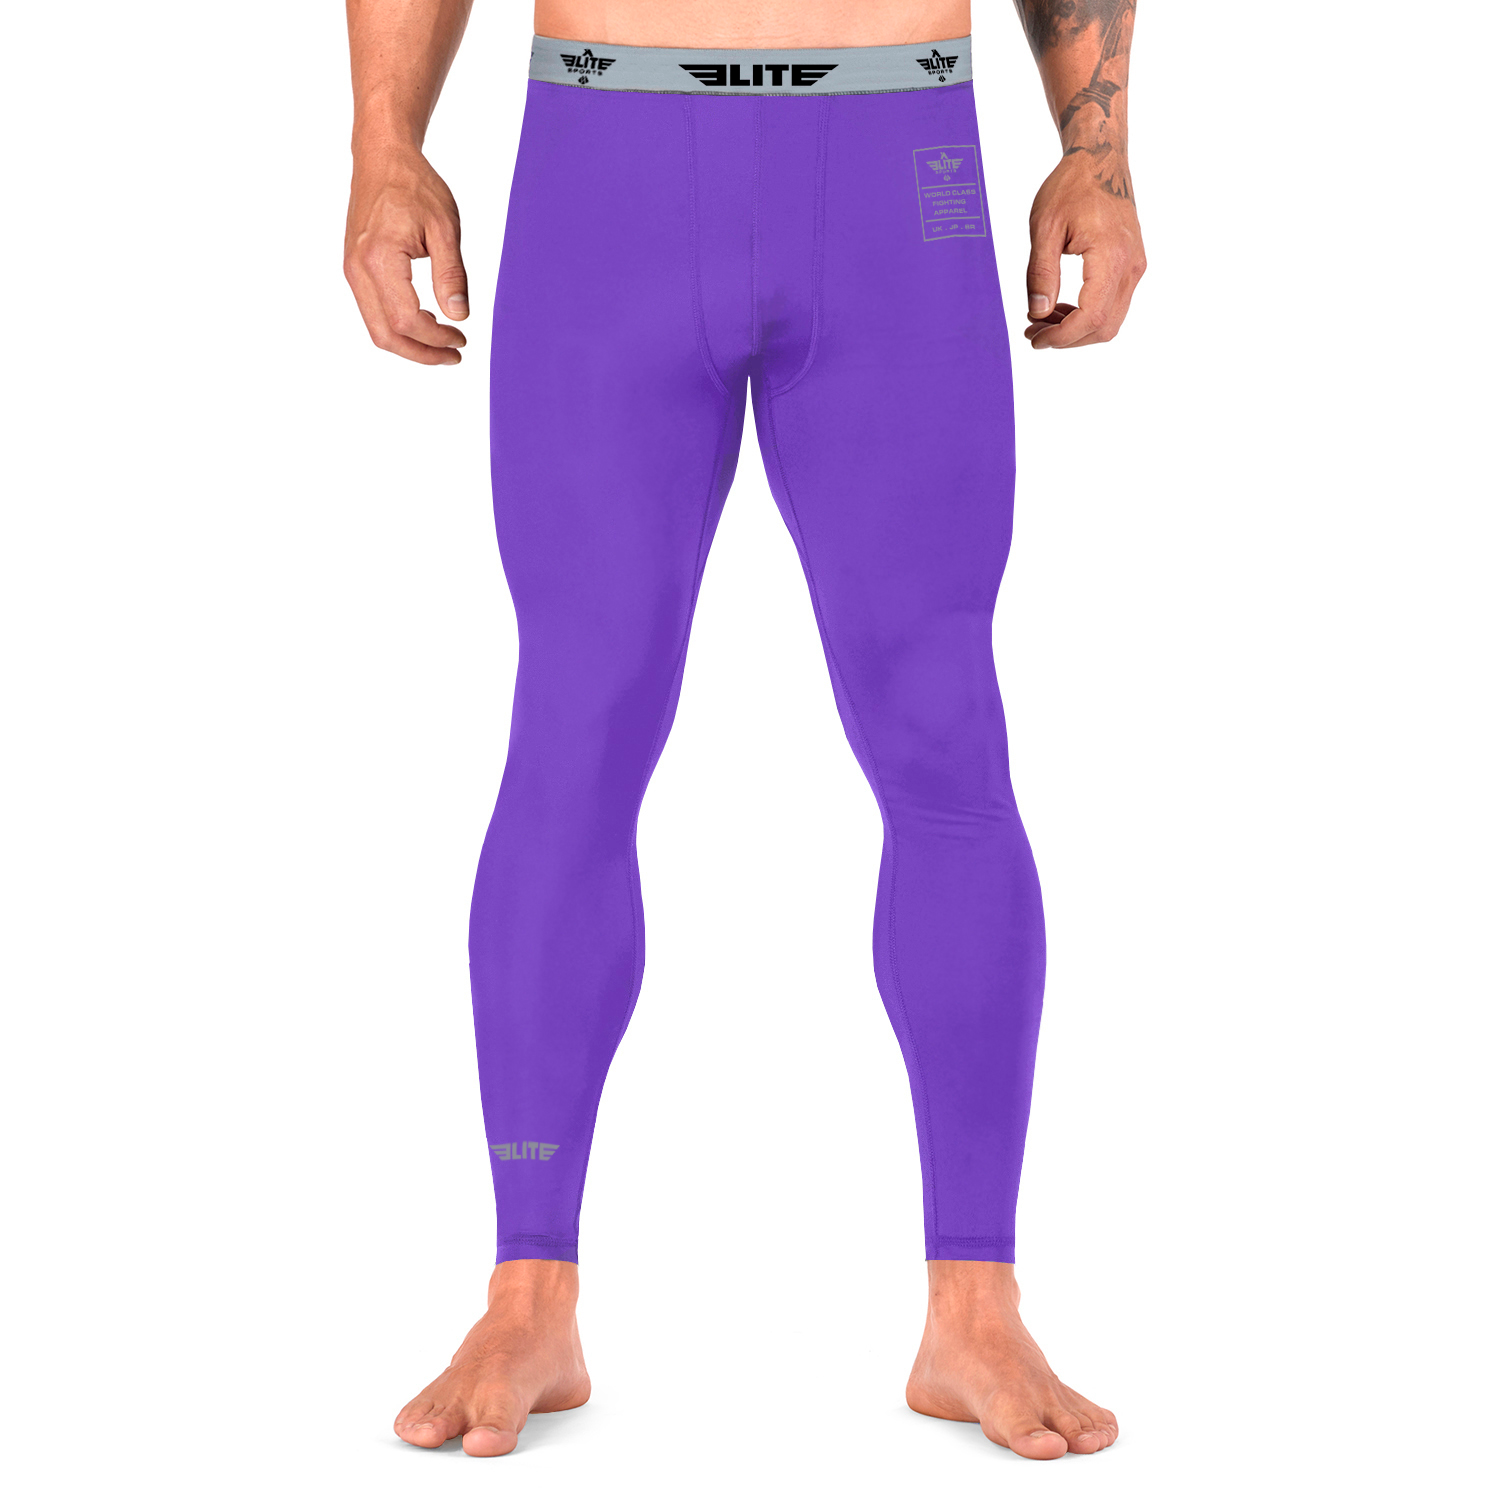 Elite Sports Plain Purple Compression MMA Spat Pants